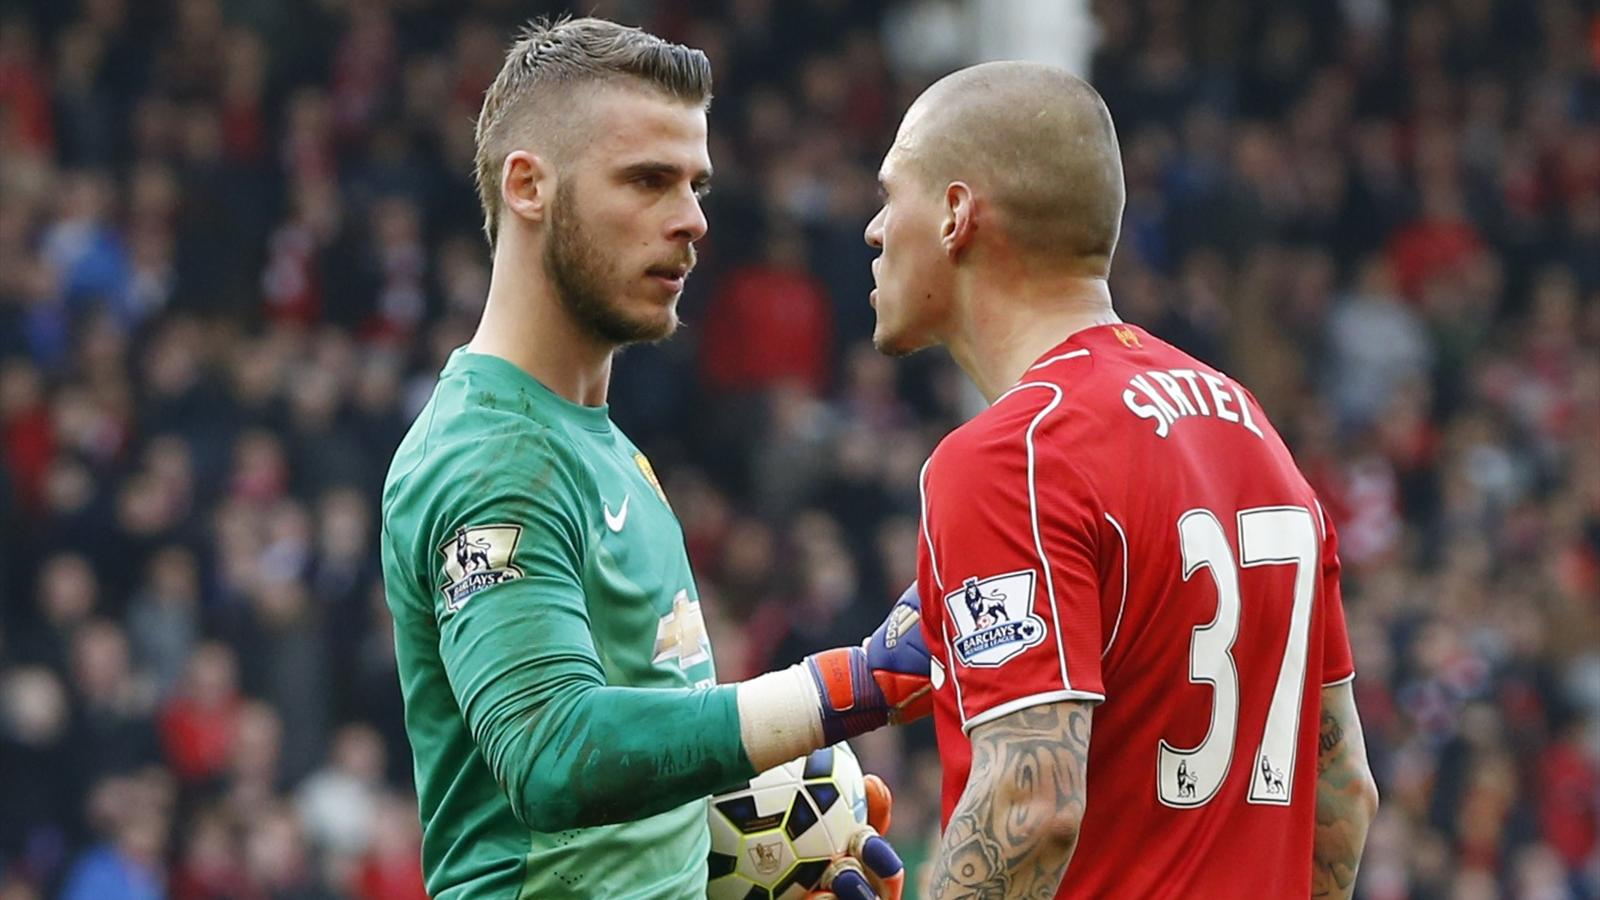 Liverpool's Martin Skrtel clashes with Manchester United's David De Gea (Reuters)